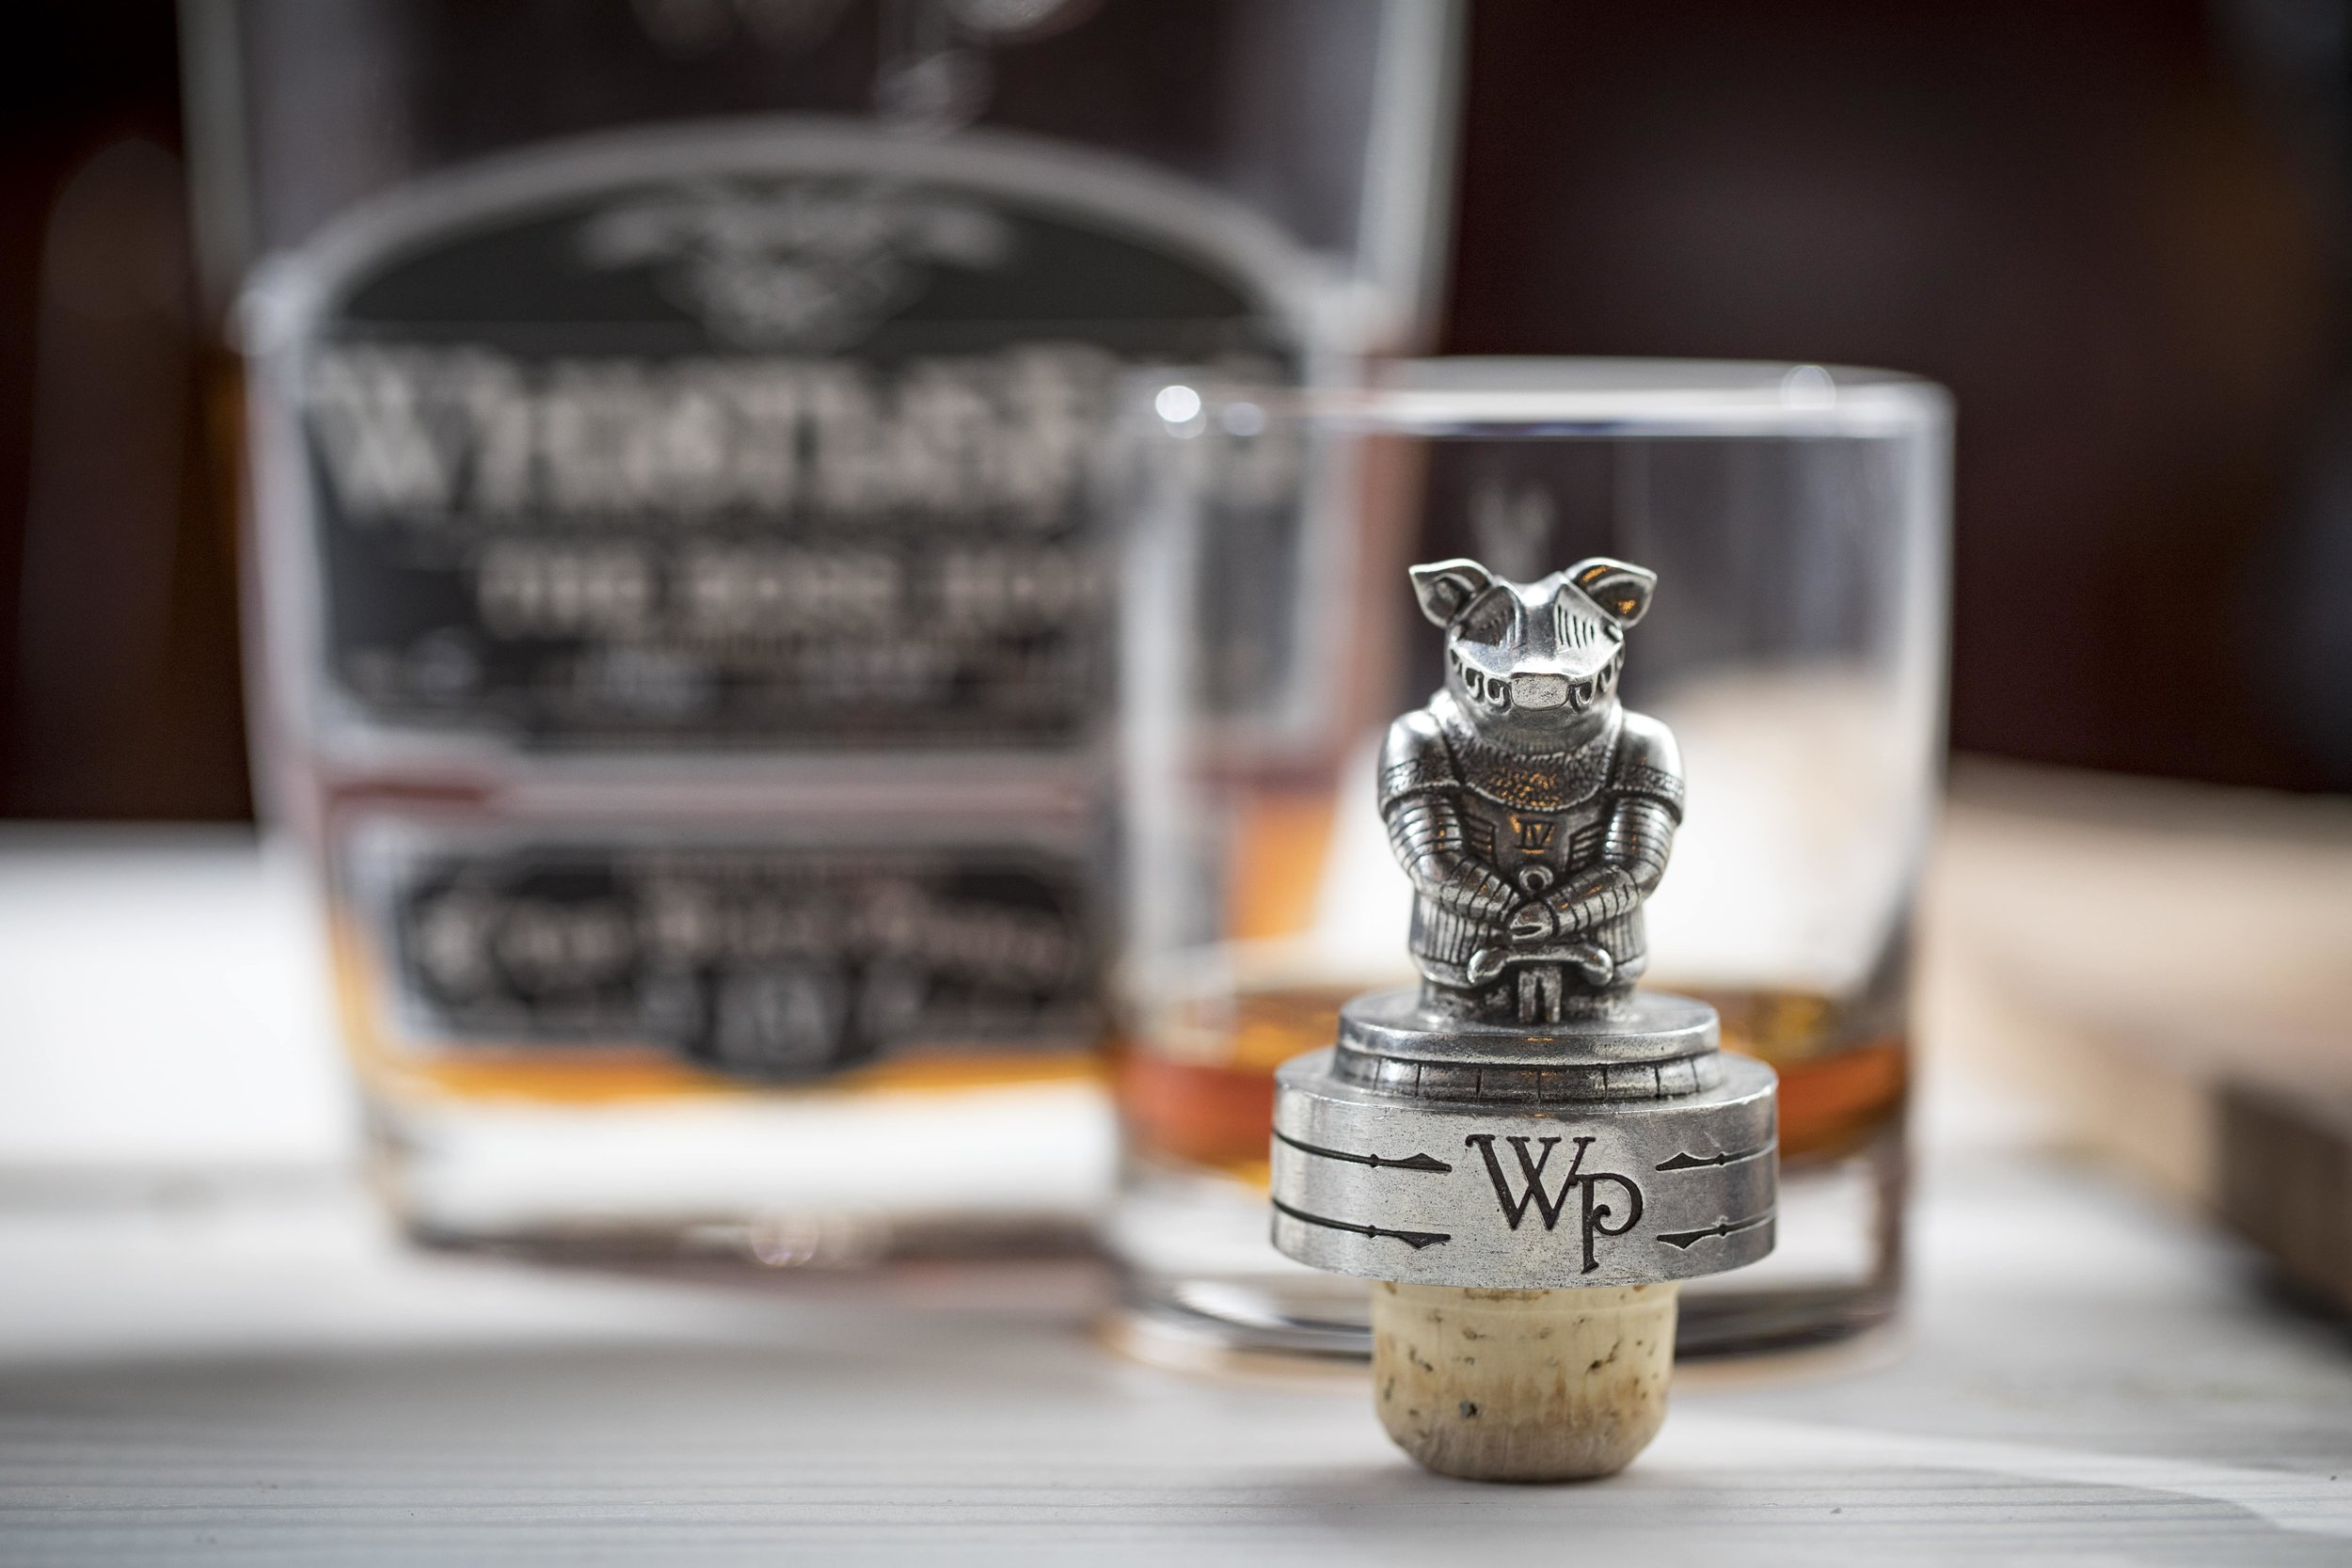 Whistle-Pig-12-yr-Bourbon_Downtown-Whiskey-Bar_Belle-Tavern-min.jpg